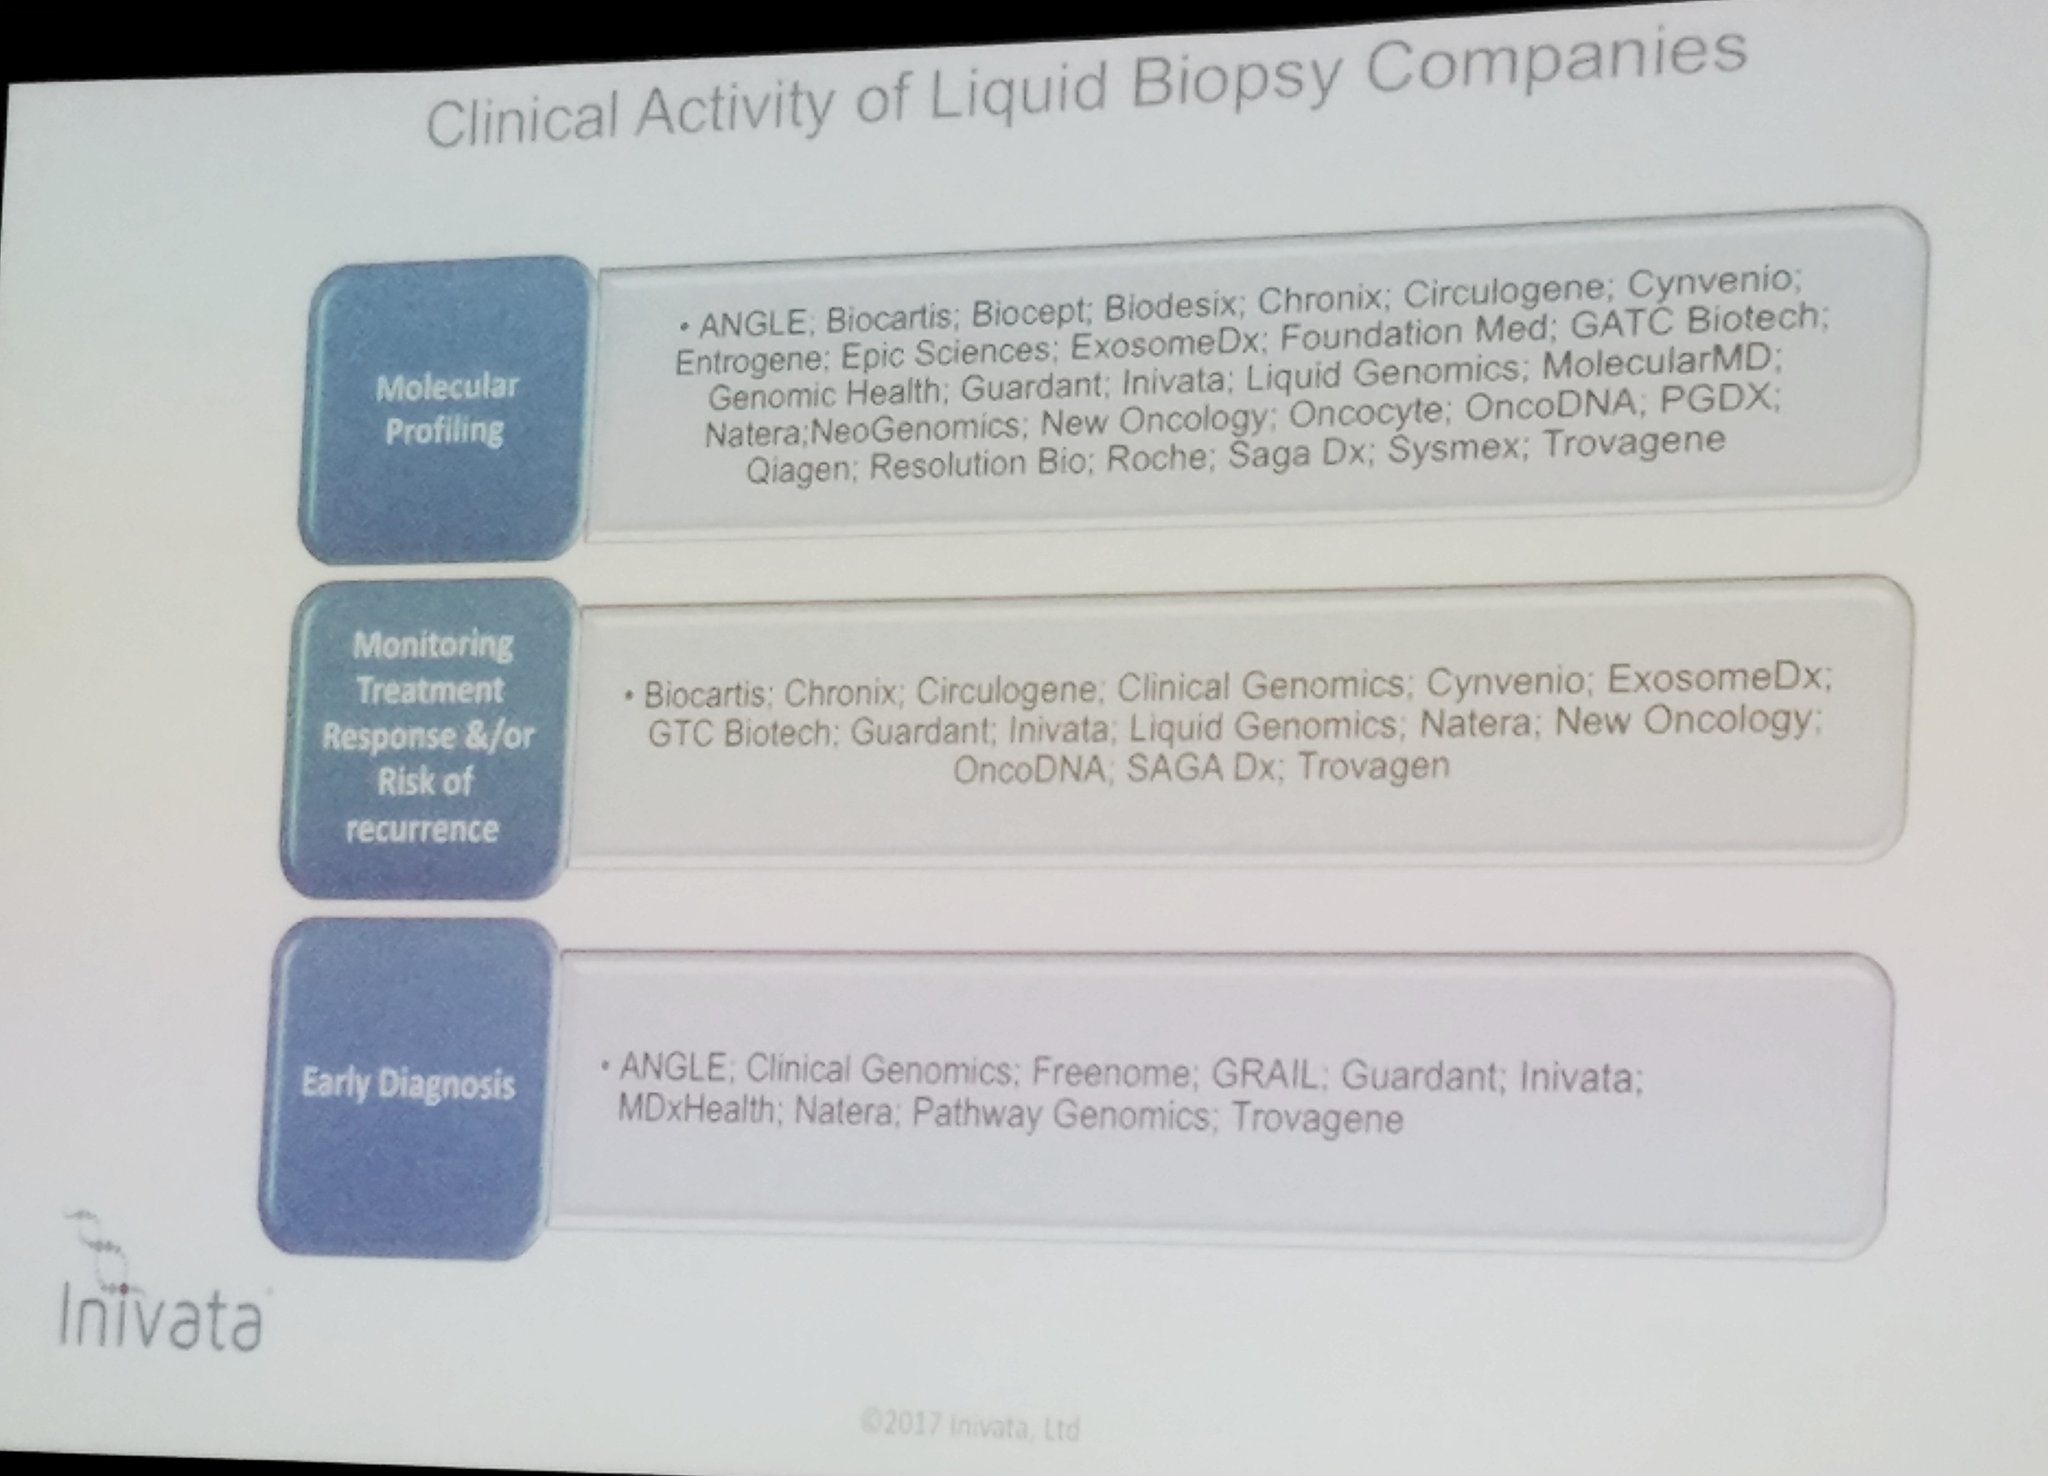 Clinical activity of #LiquidBiopsy companies in oncology frm early detection to ds monitoring, mol profiling- Clive Morris @Inivata #PMWC17 https://t.co/Z8otkdf7VR